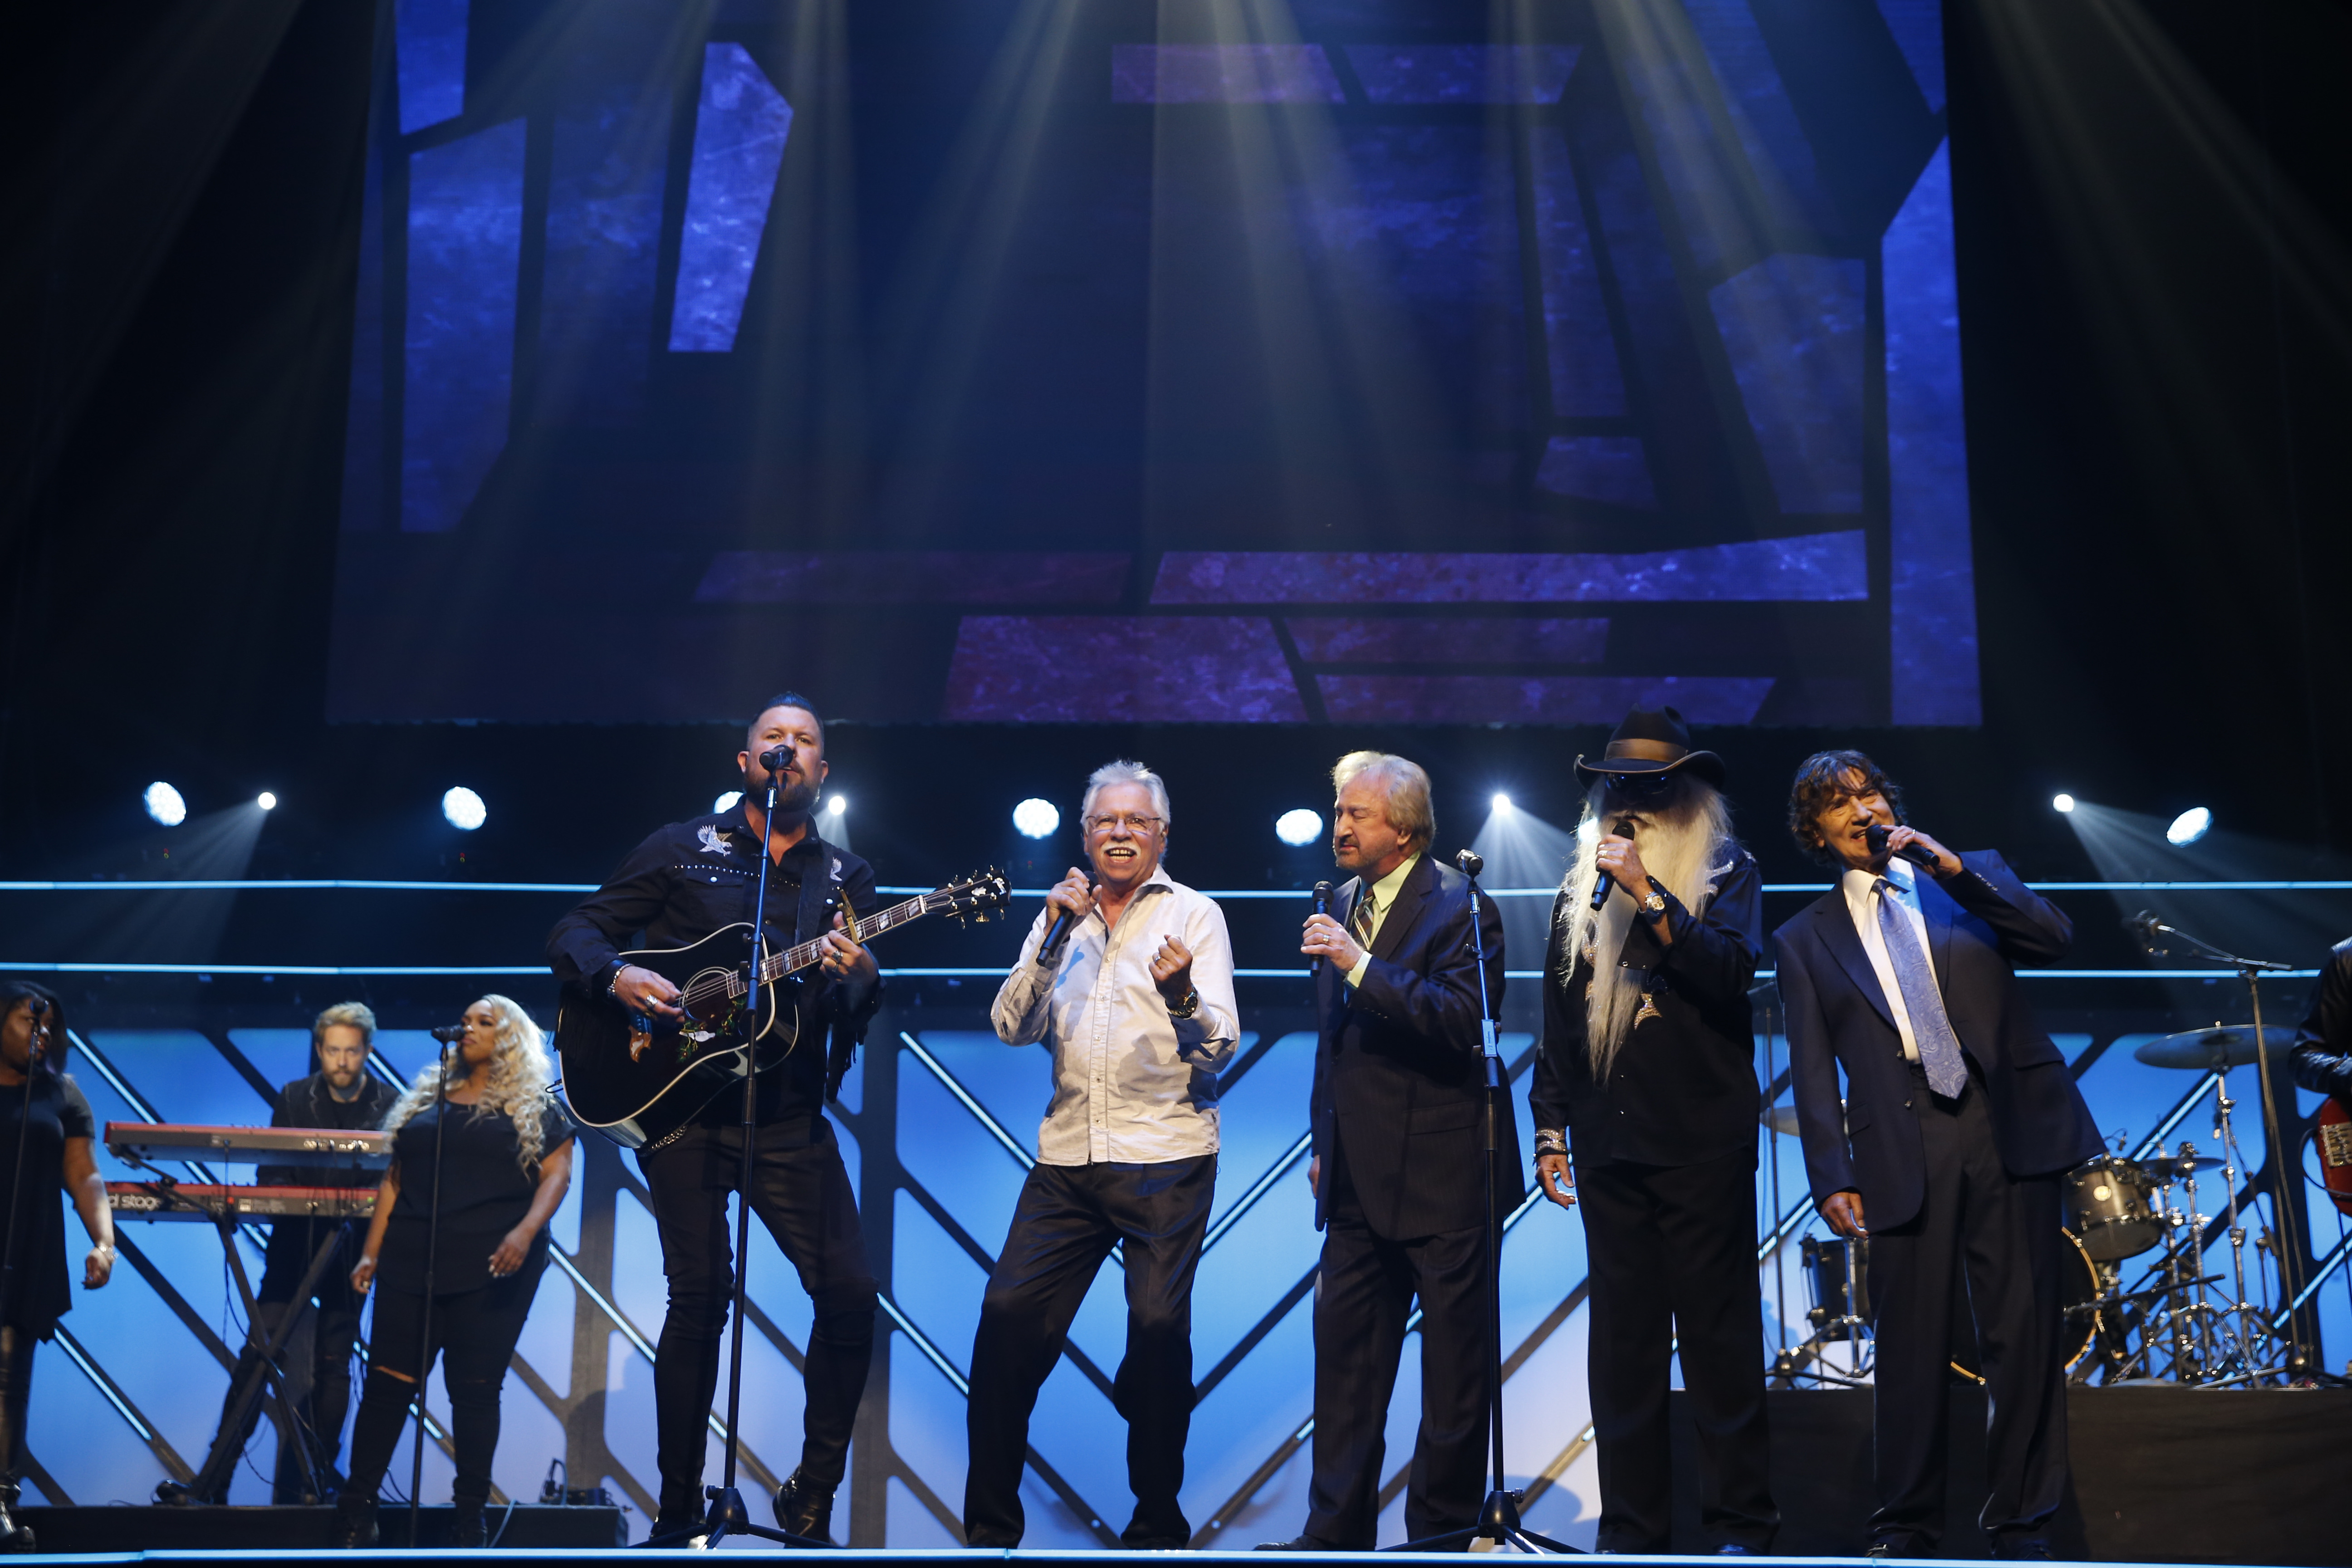 Tune-In Alert: The Oak Ridge Boys open 48th Annual GMA Dove Awards with 2017 New Artist of the Year Zach Williams